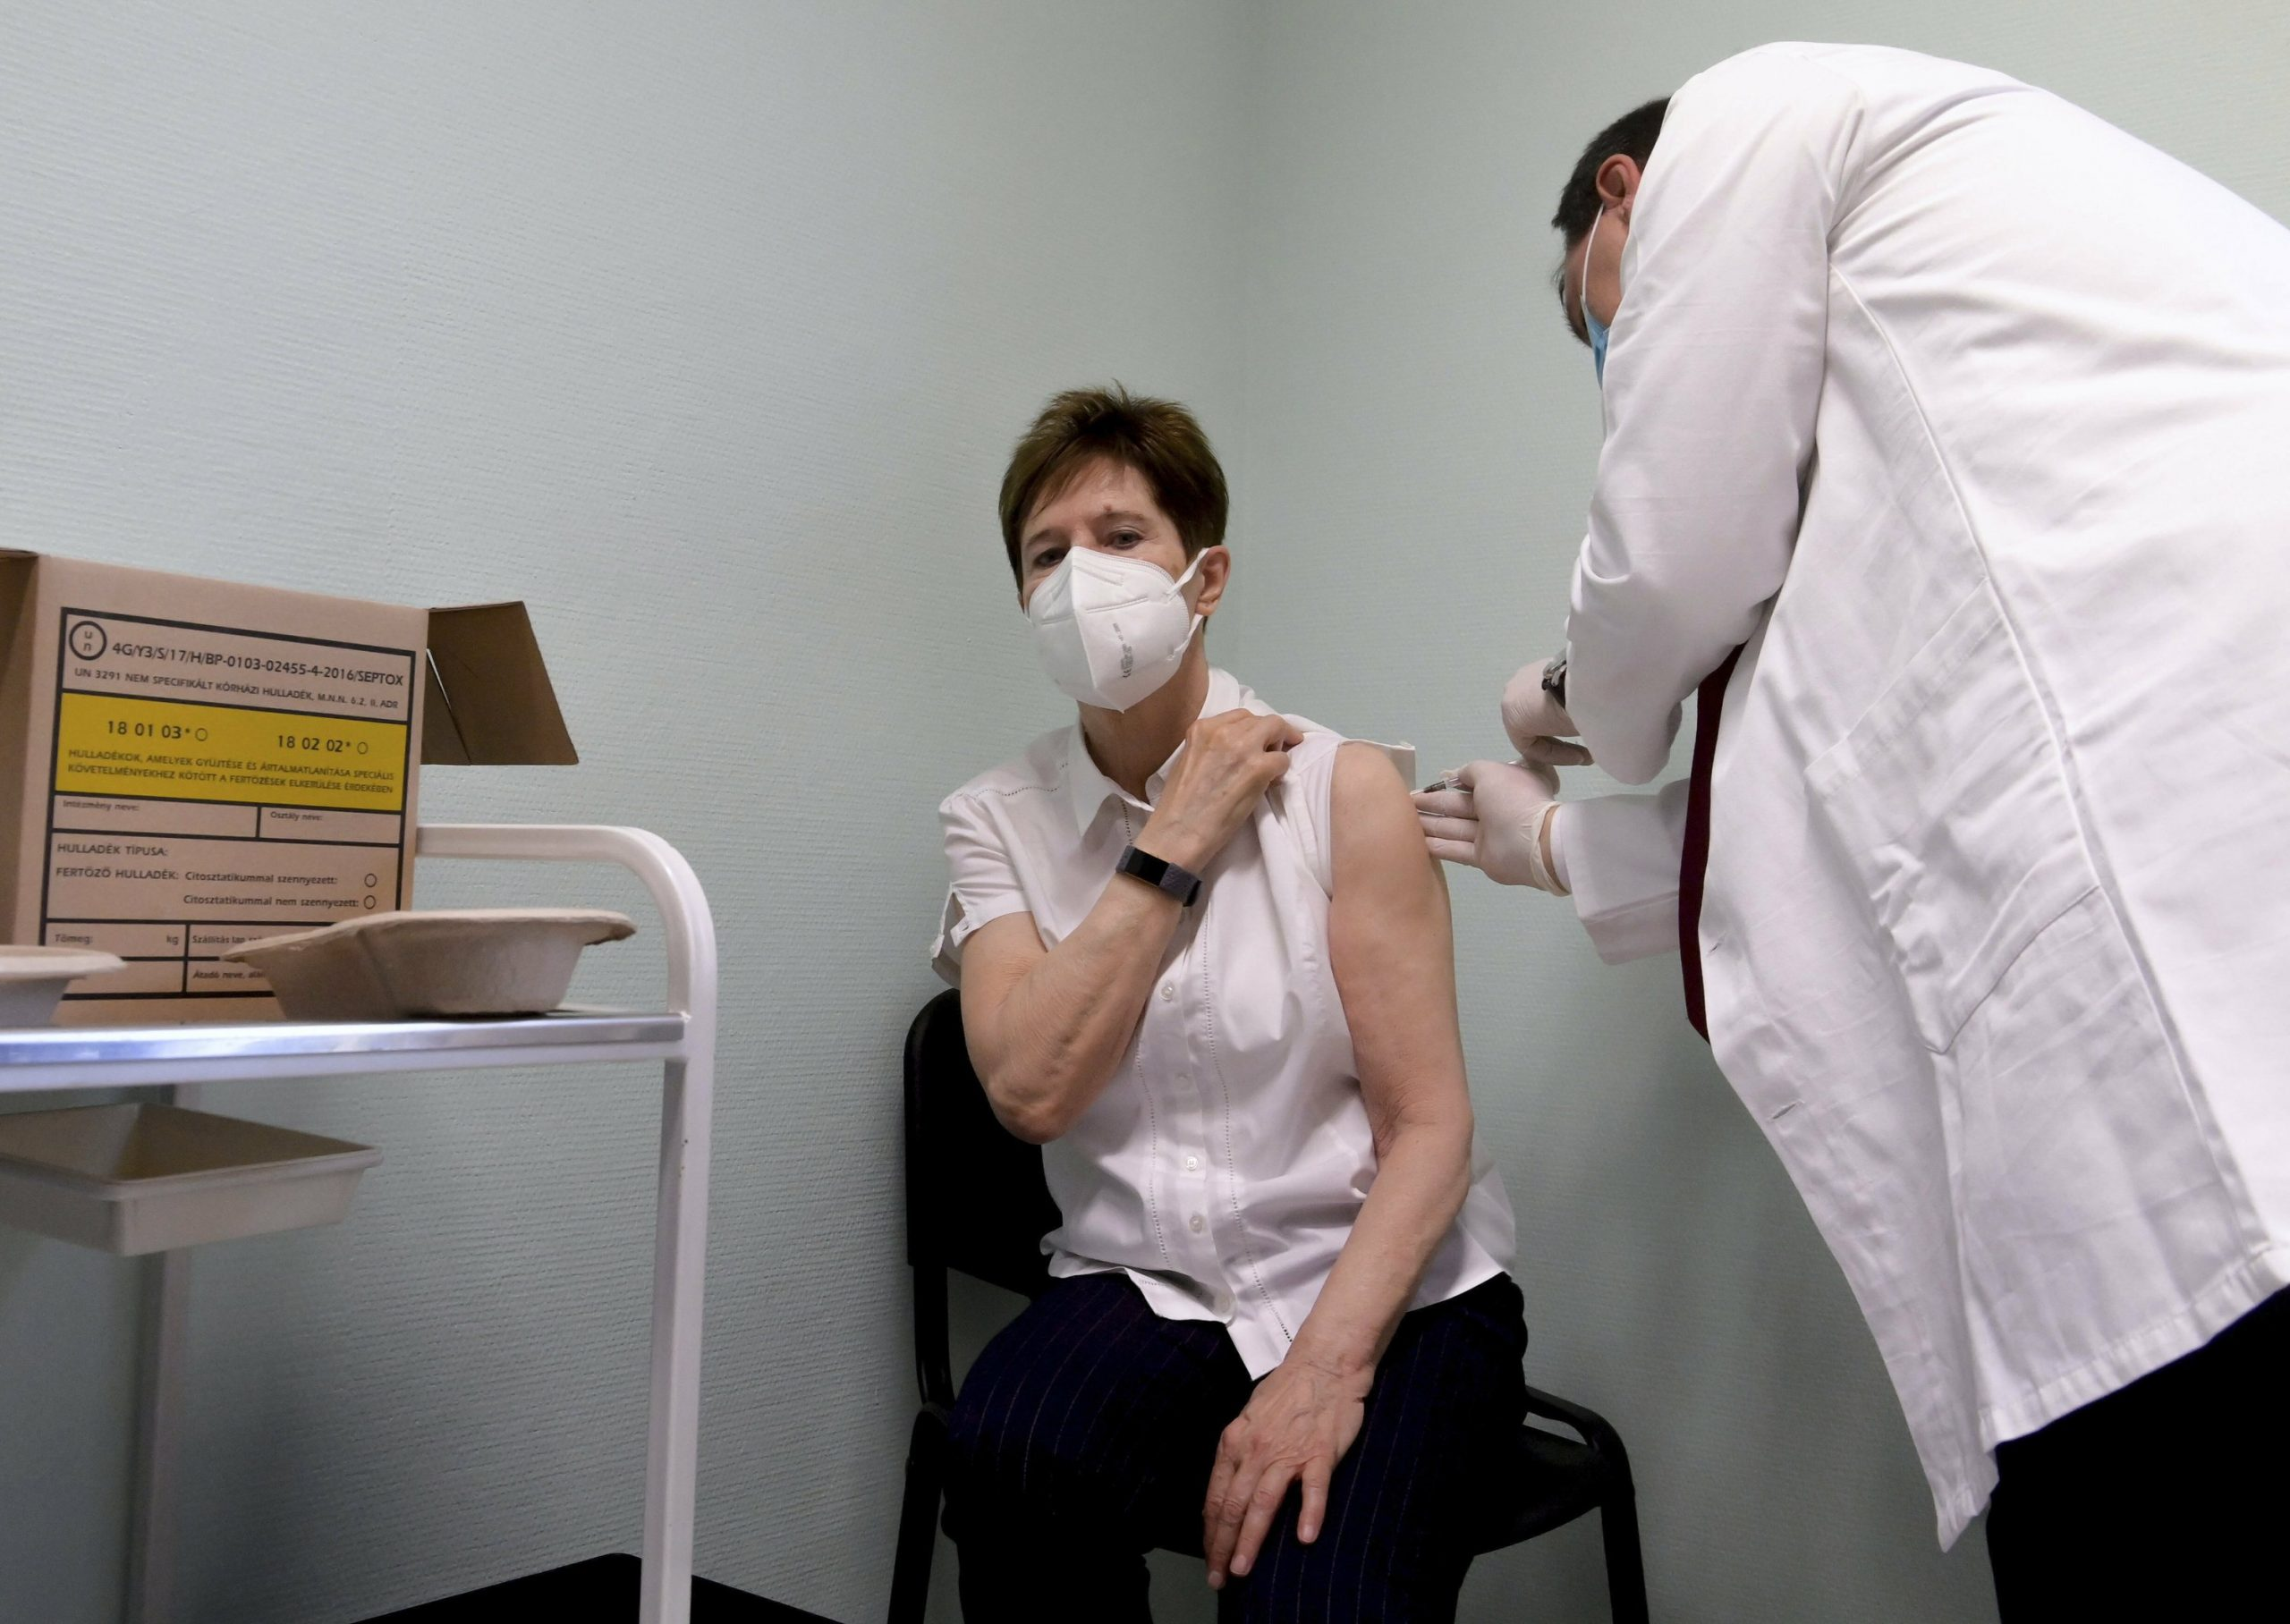 Hungary gives its first vaccine a day before the European Union launch